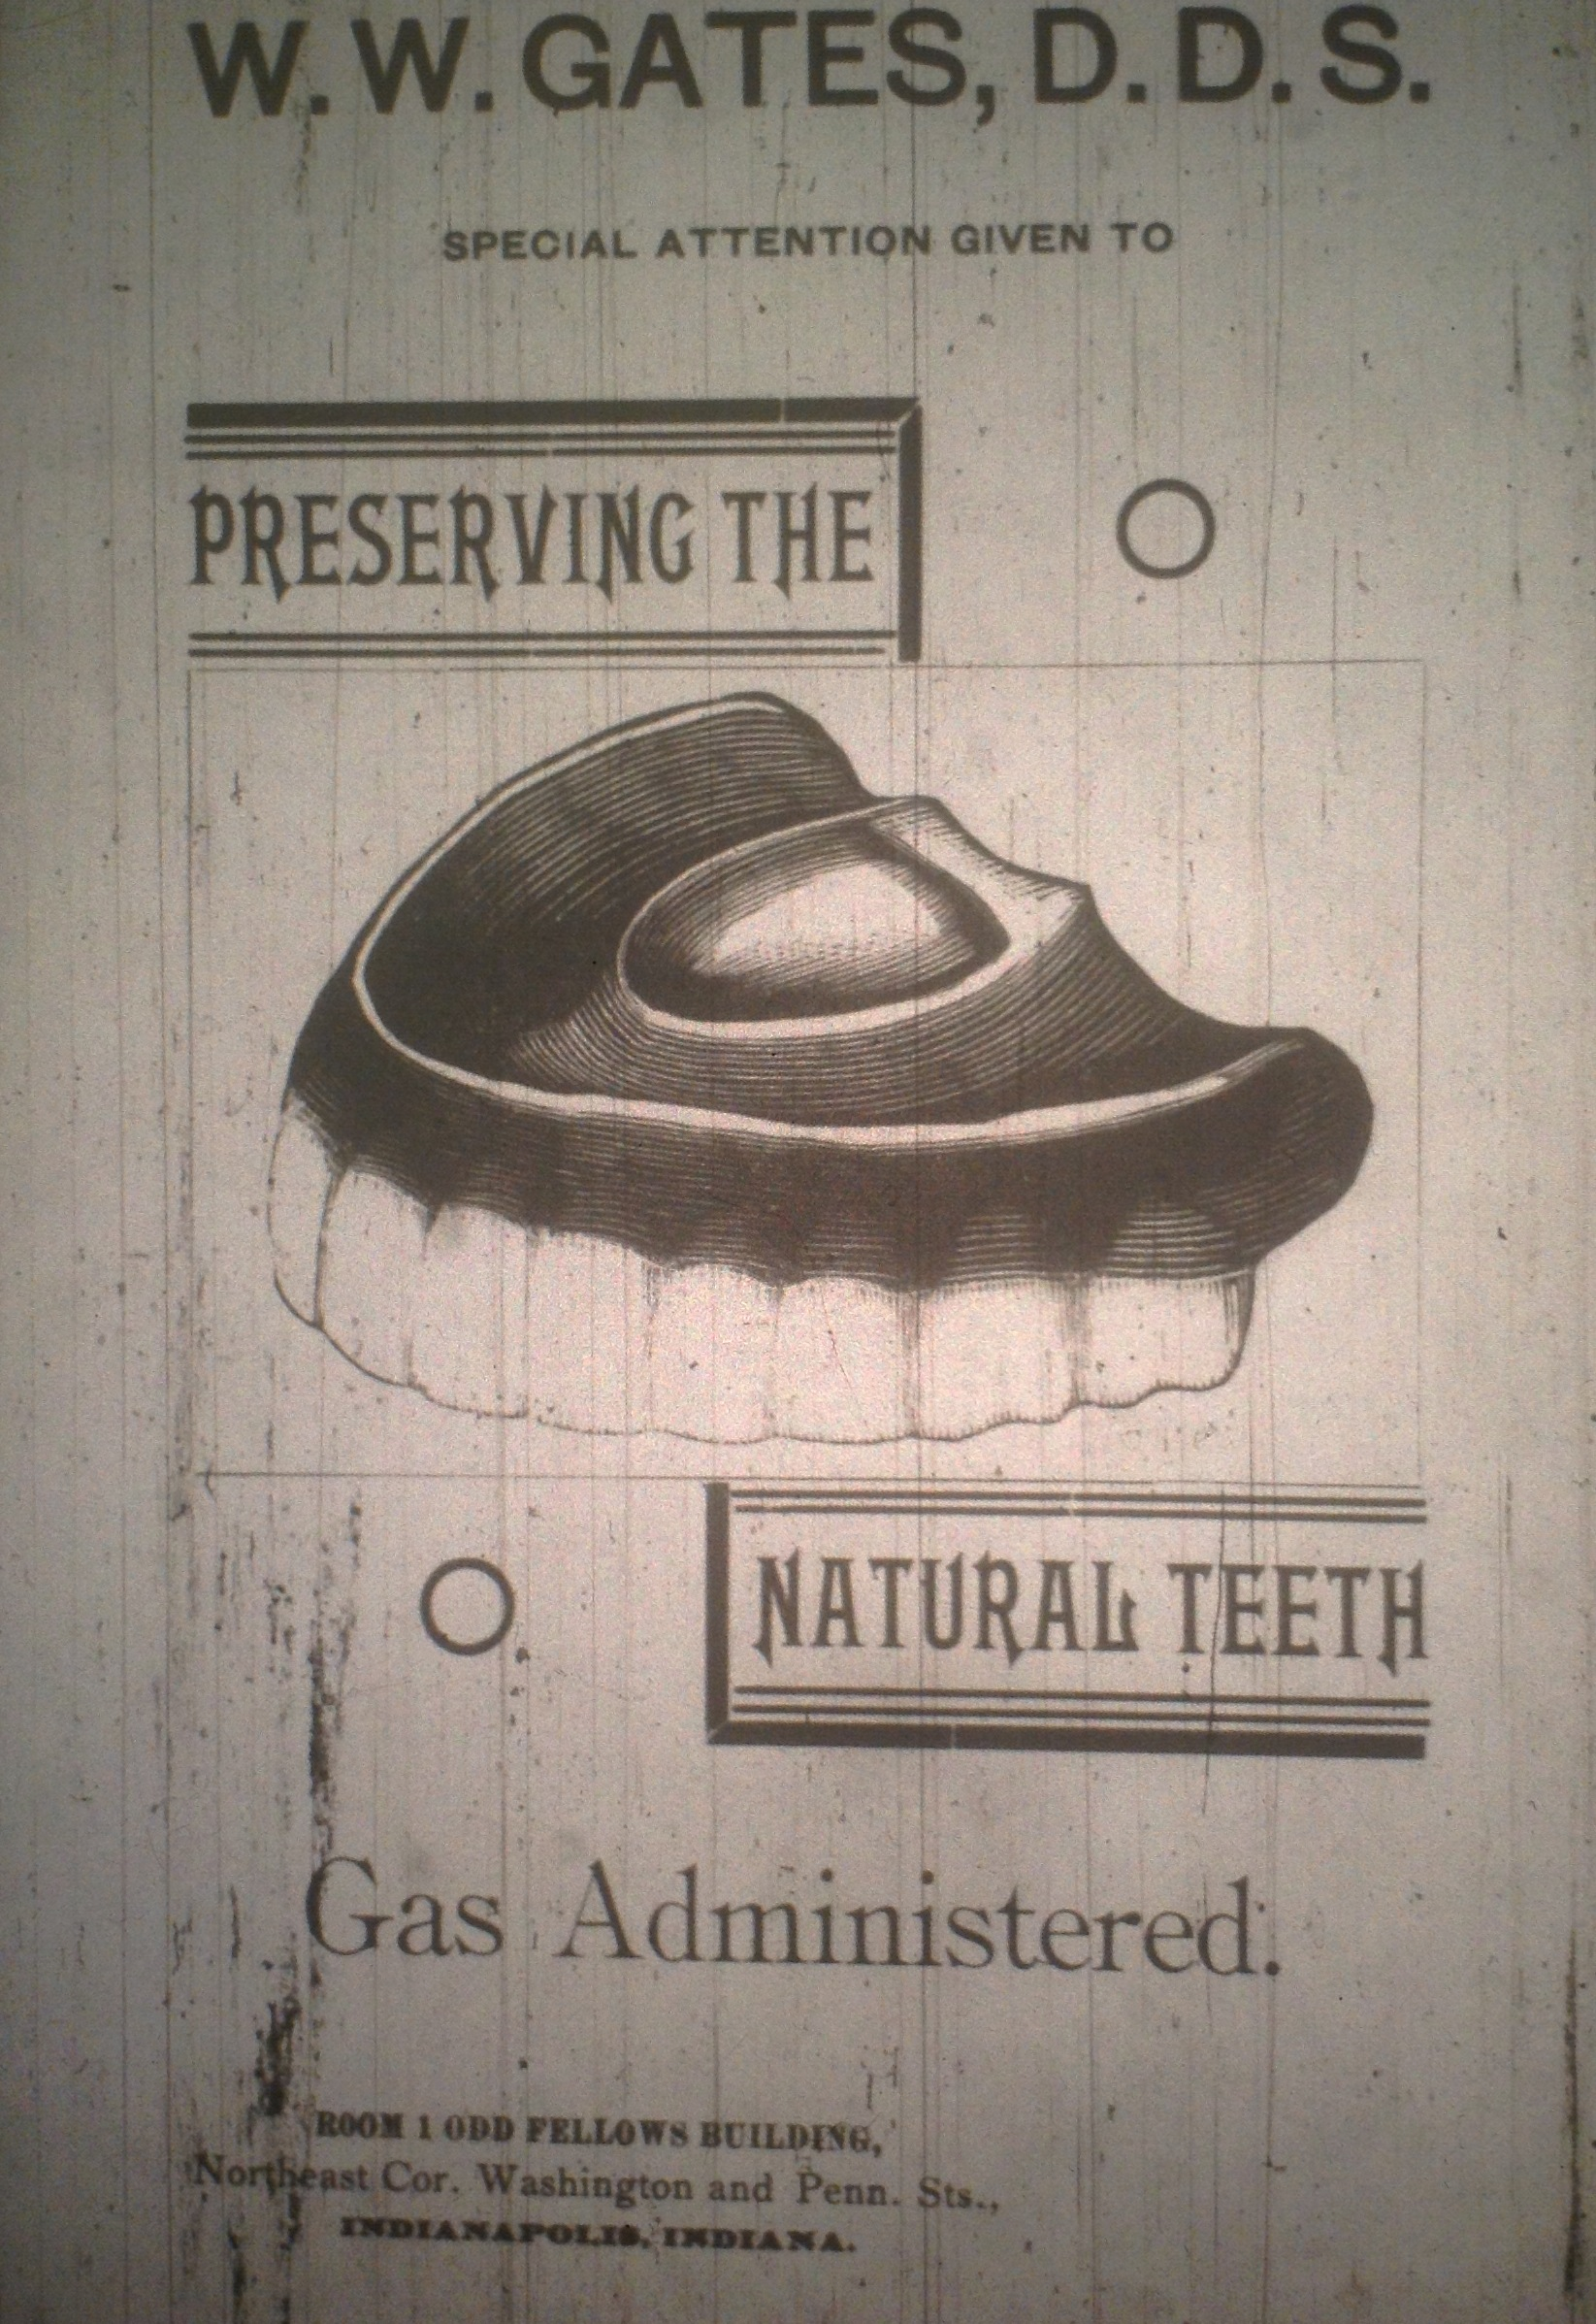 Sunday Adverts: W.W. Gates, DDS